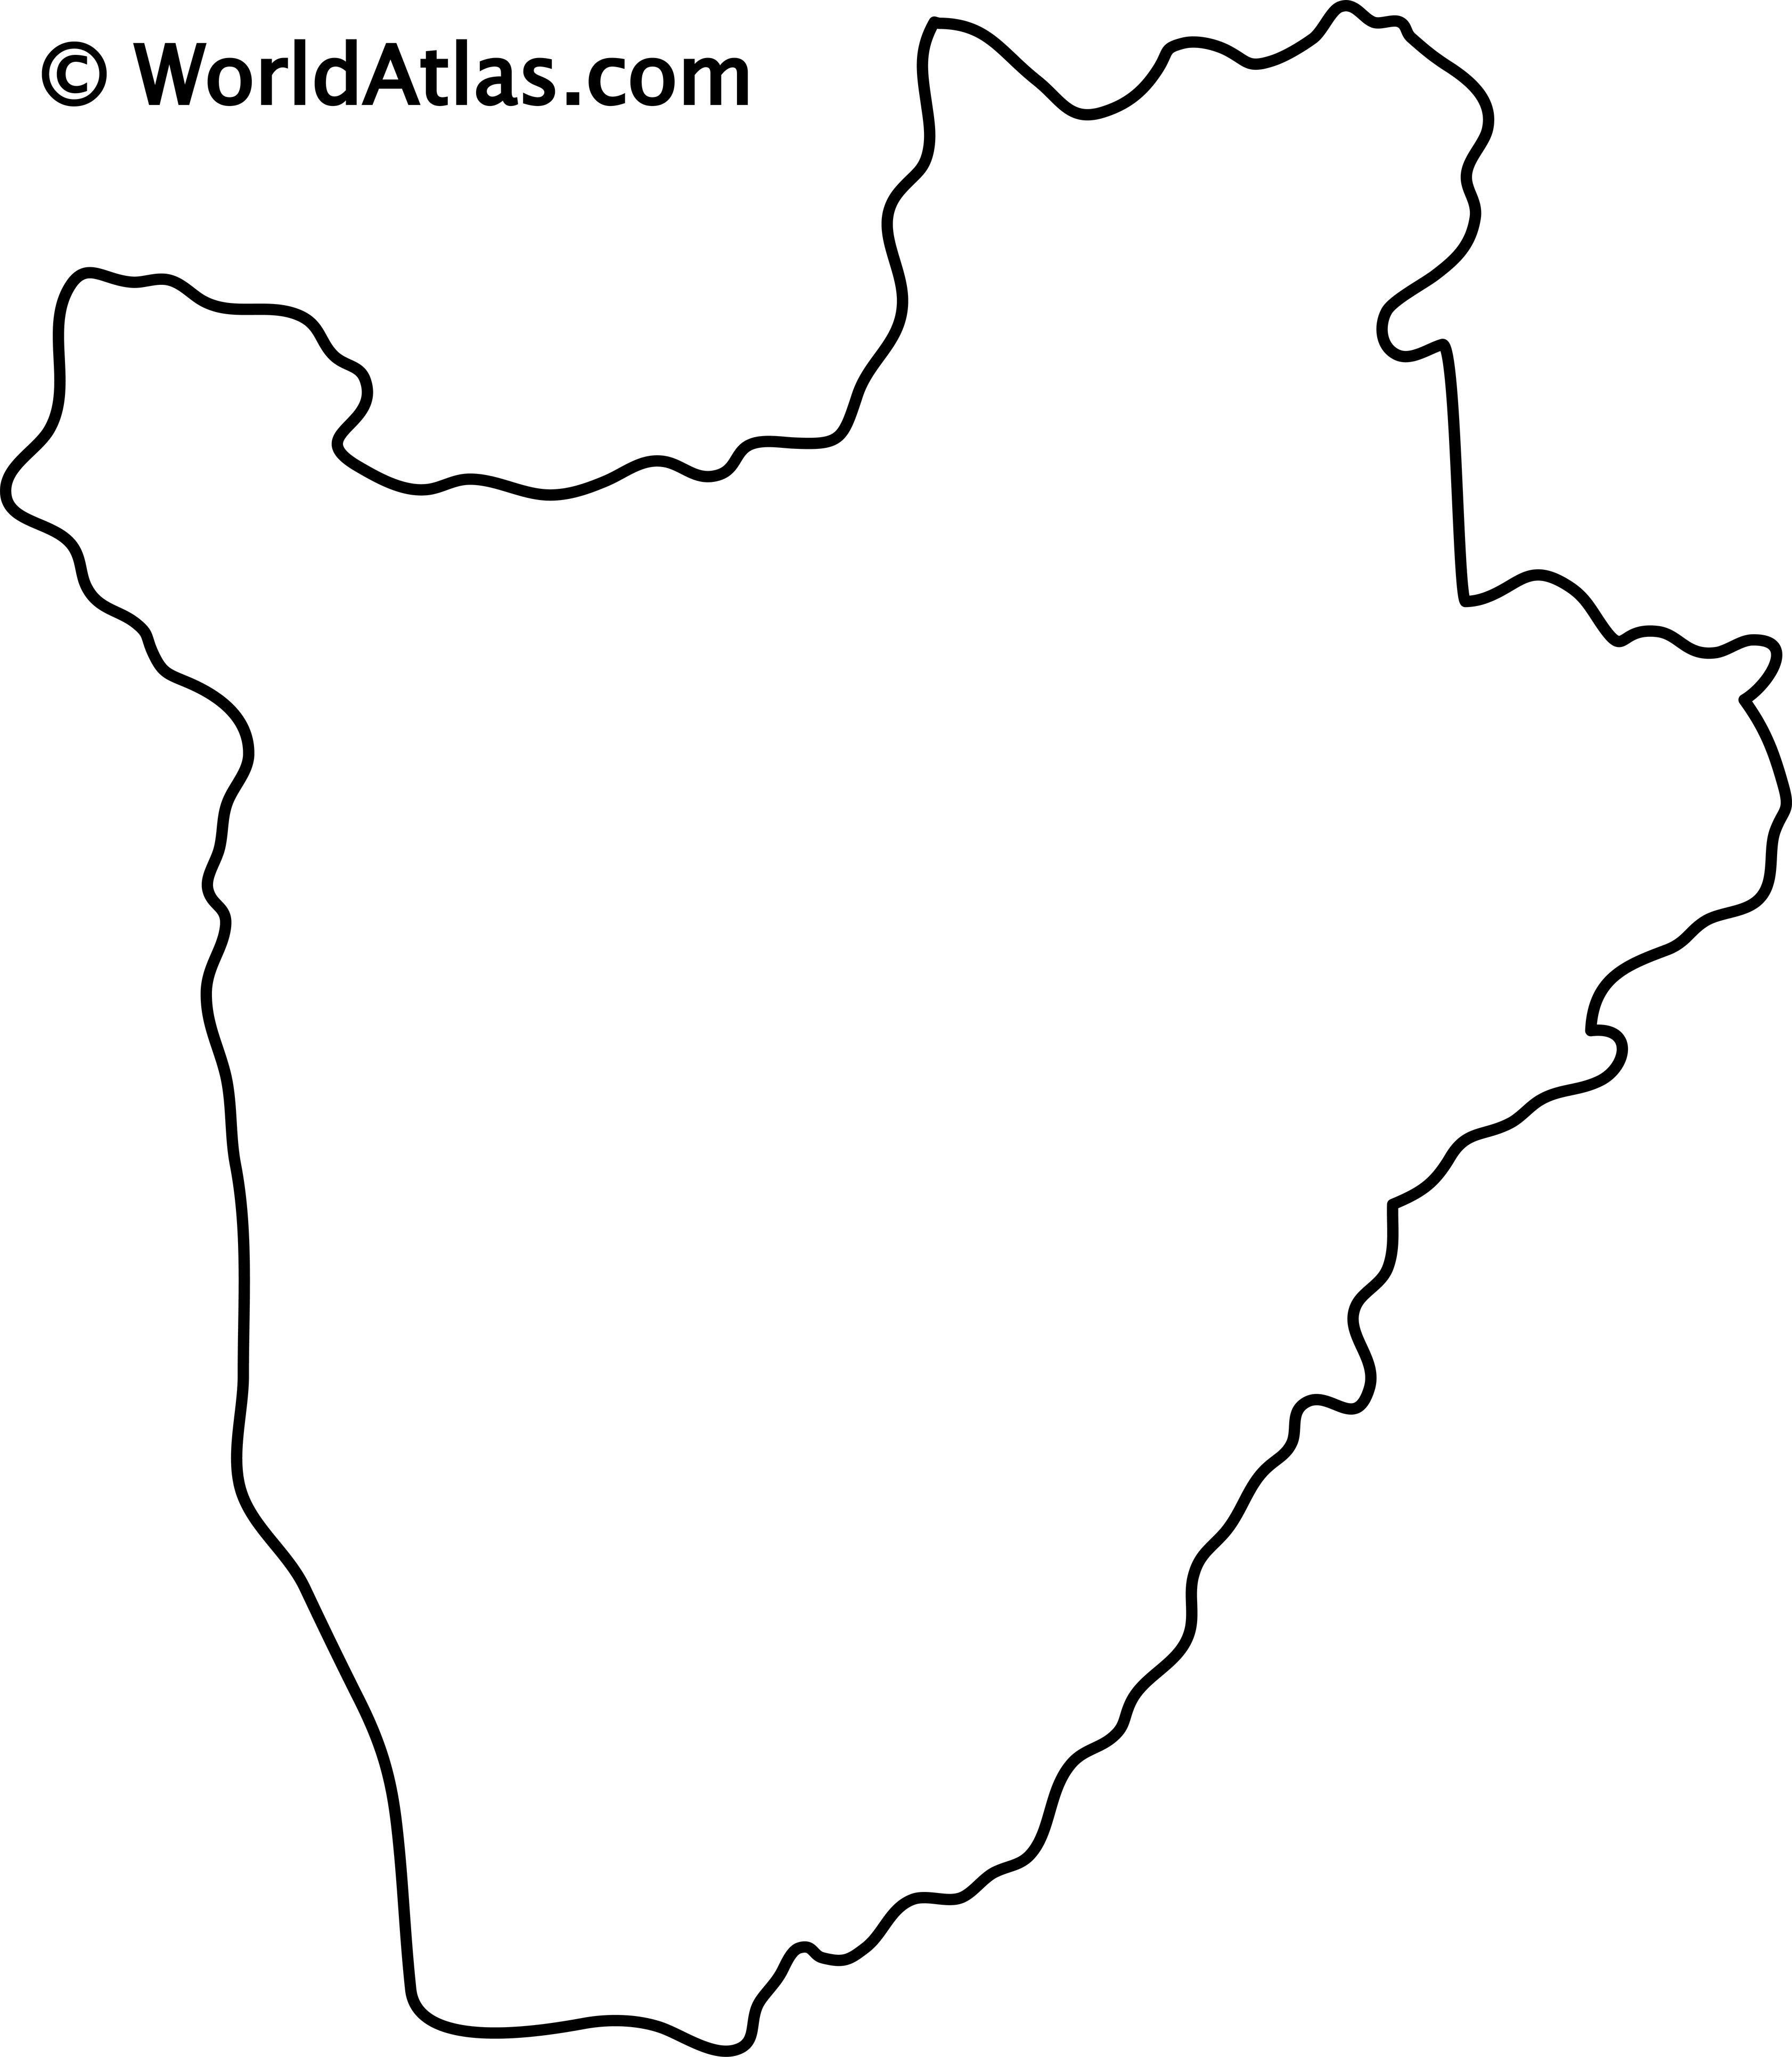 Blank outline map of Burundi